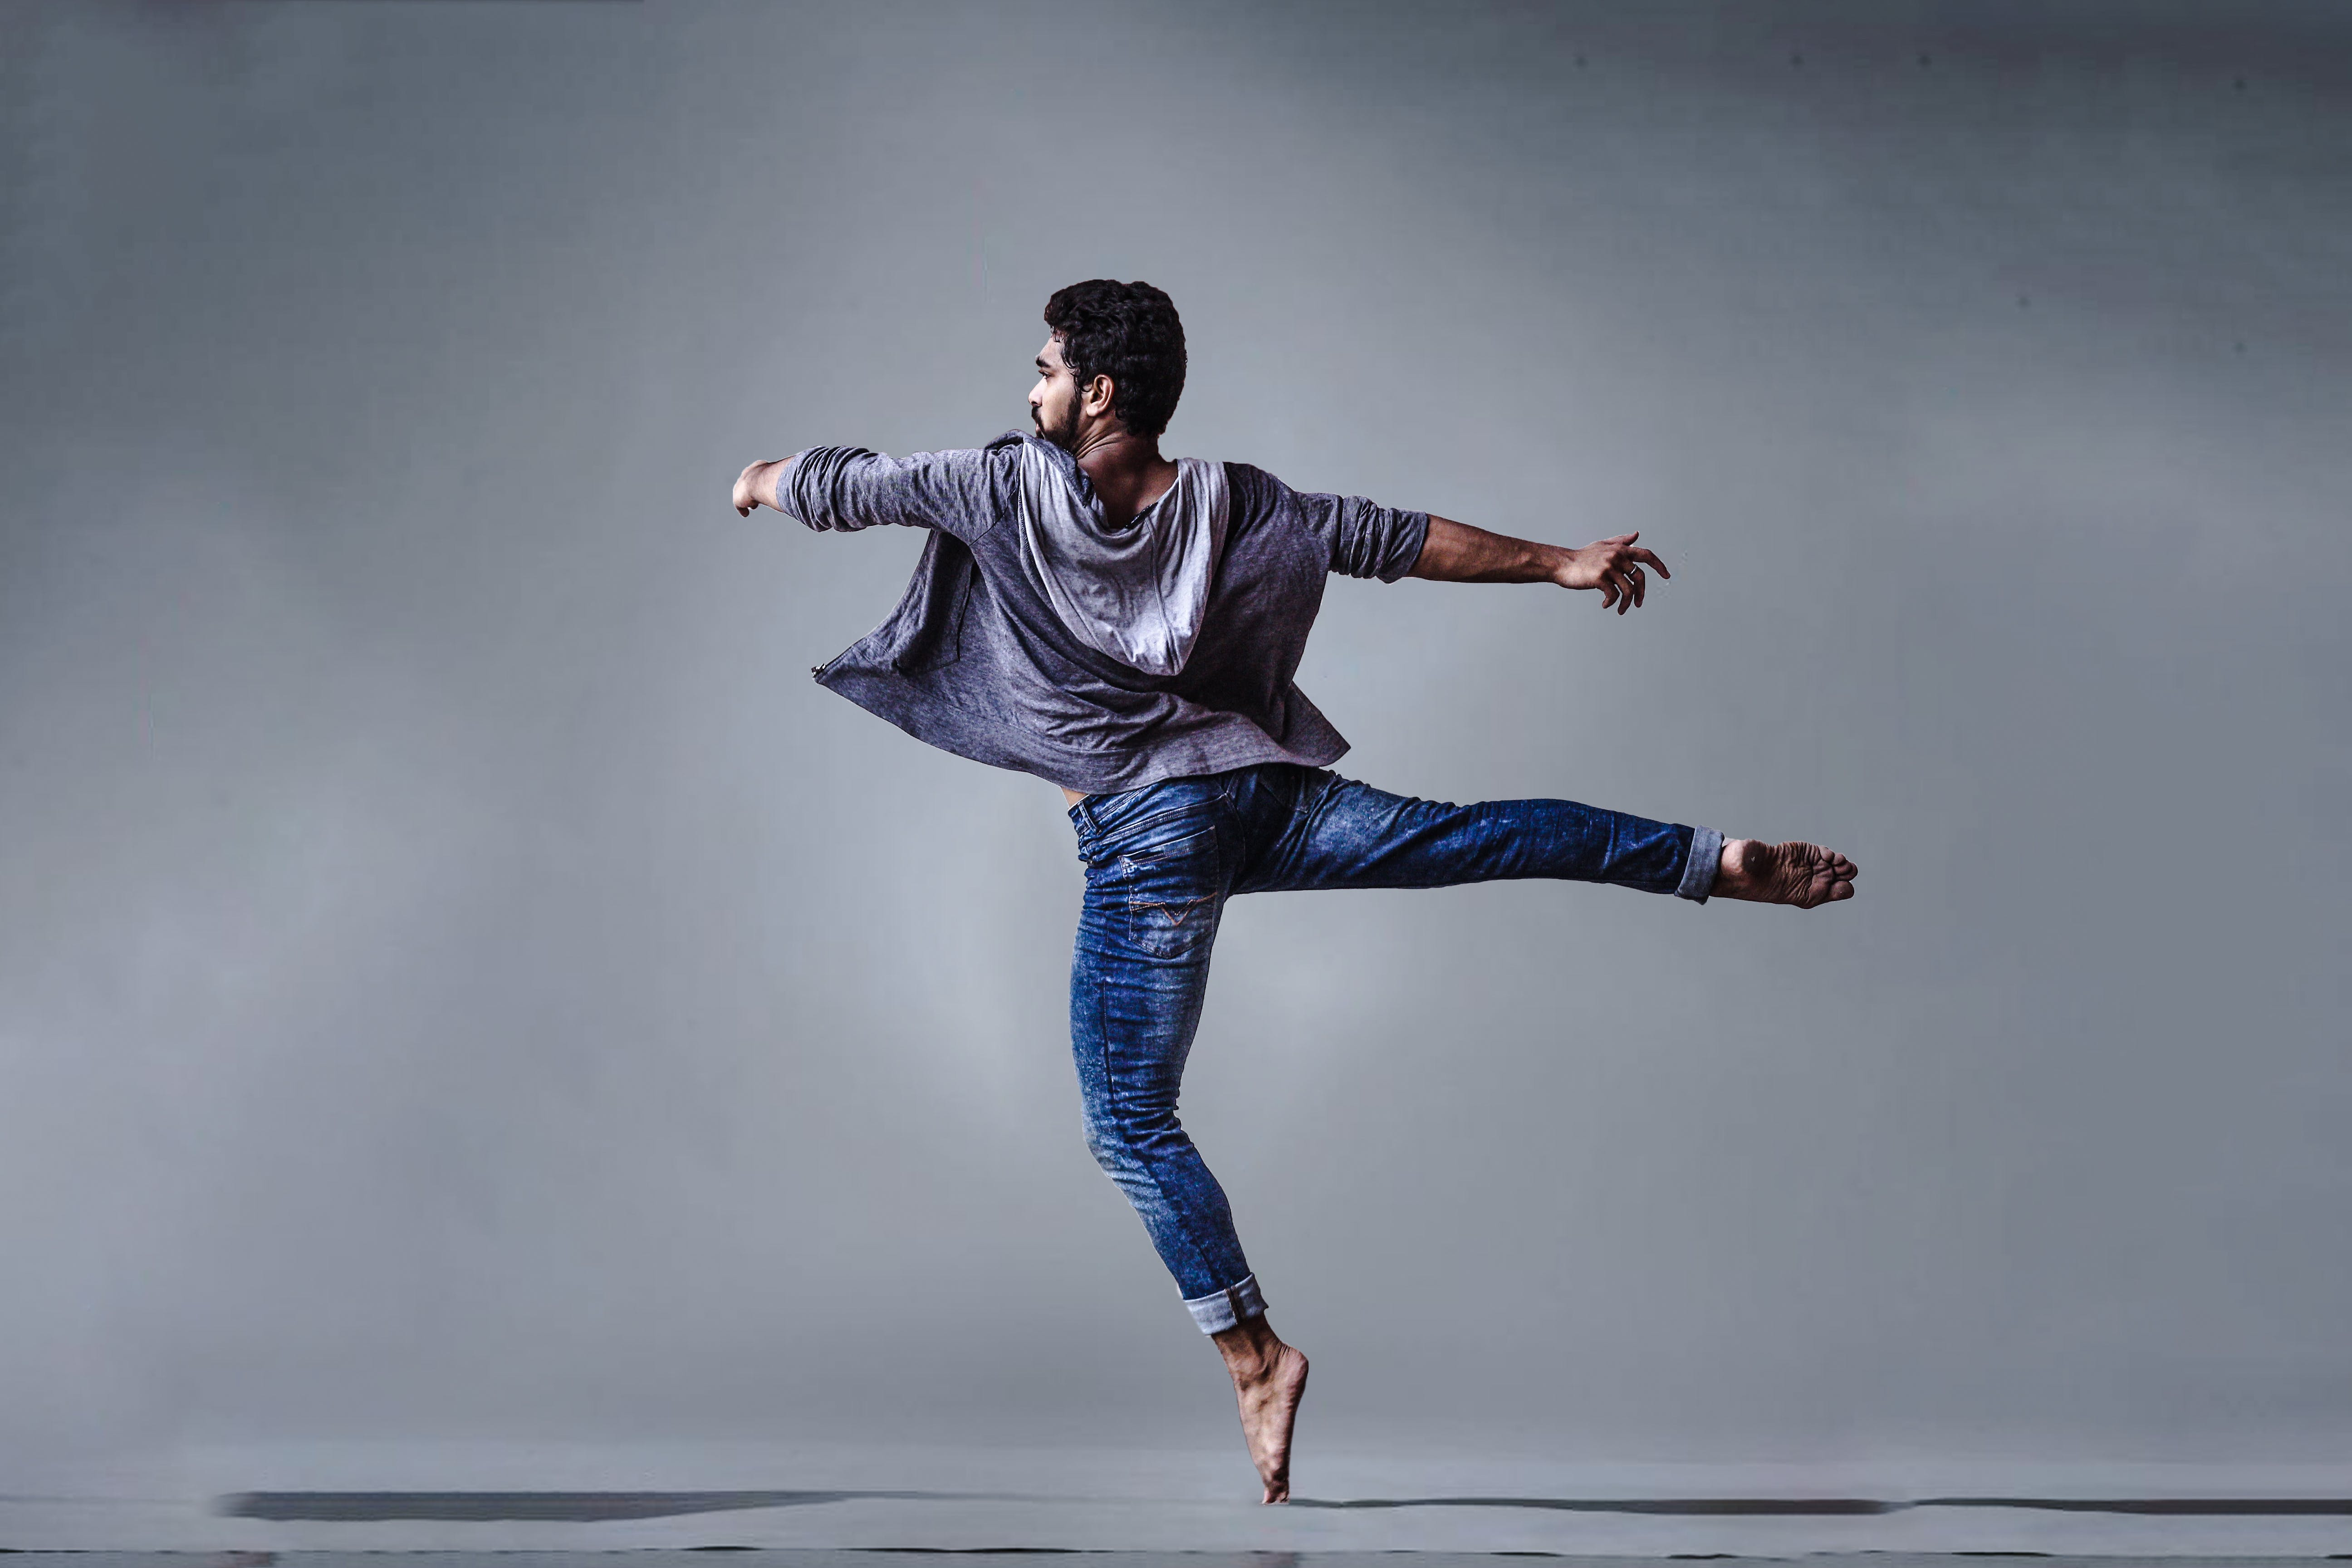 Man Wearing Blue Jeans Doing Pirouette Spin